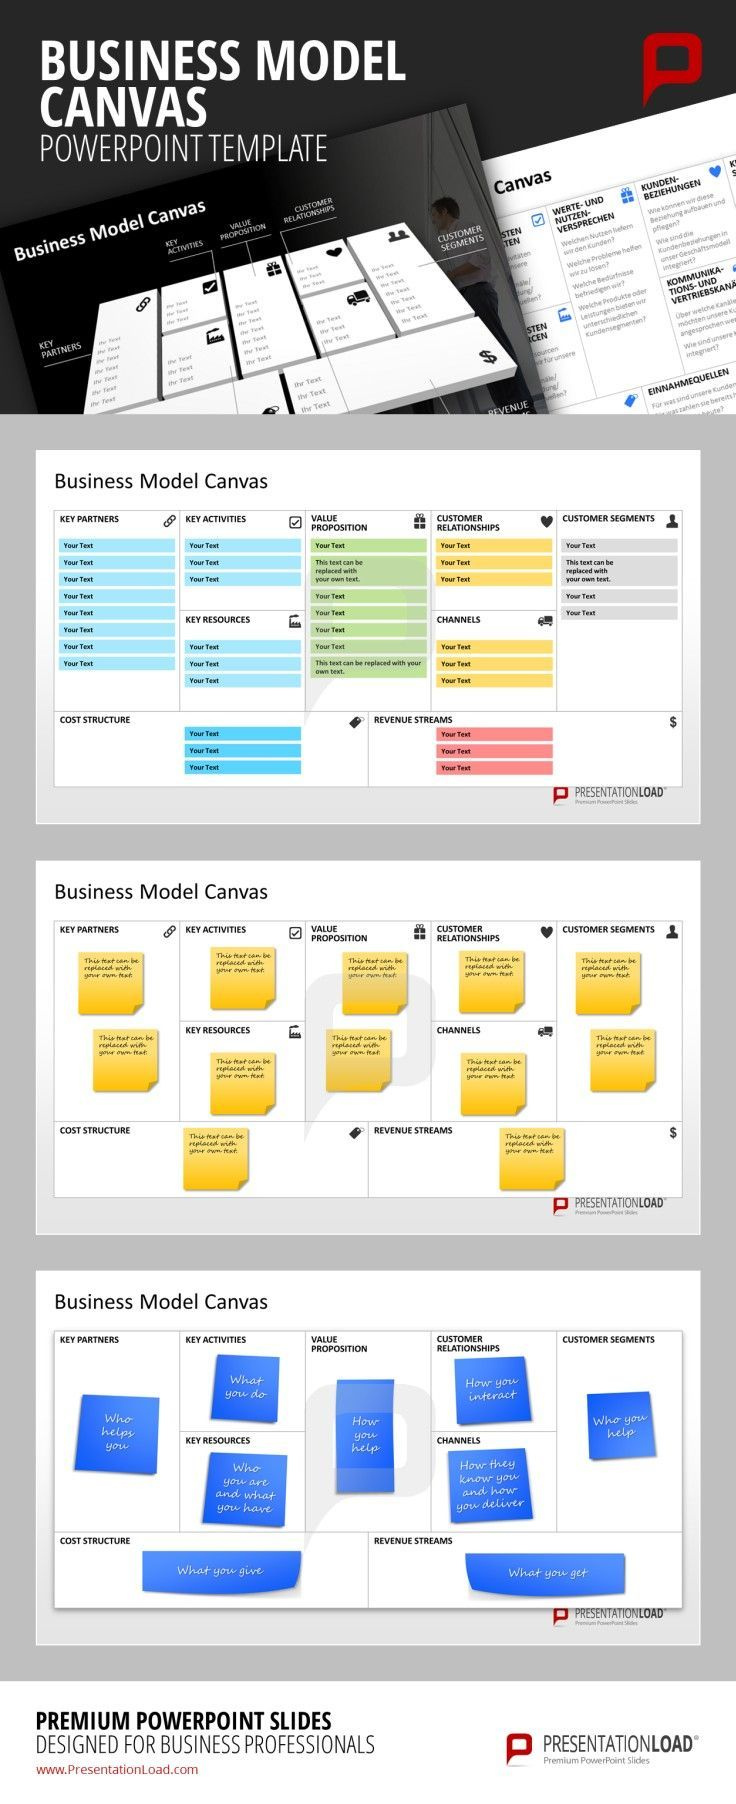 Business model canvas powerpoint template strategically plan and business model canvas powerpoint template strategically plan and present your business model with the business model canvas template set for powerpoint flashek Image collections